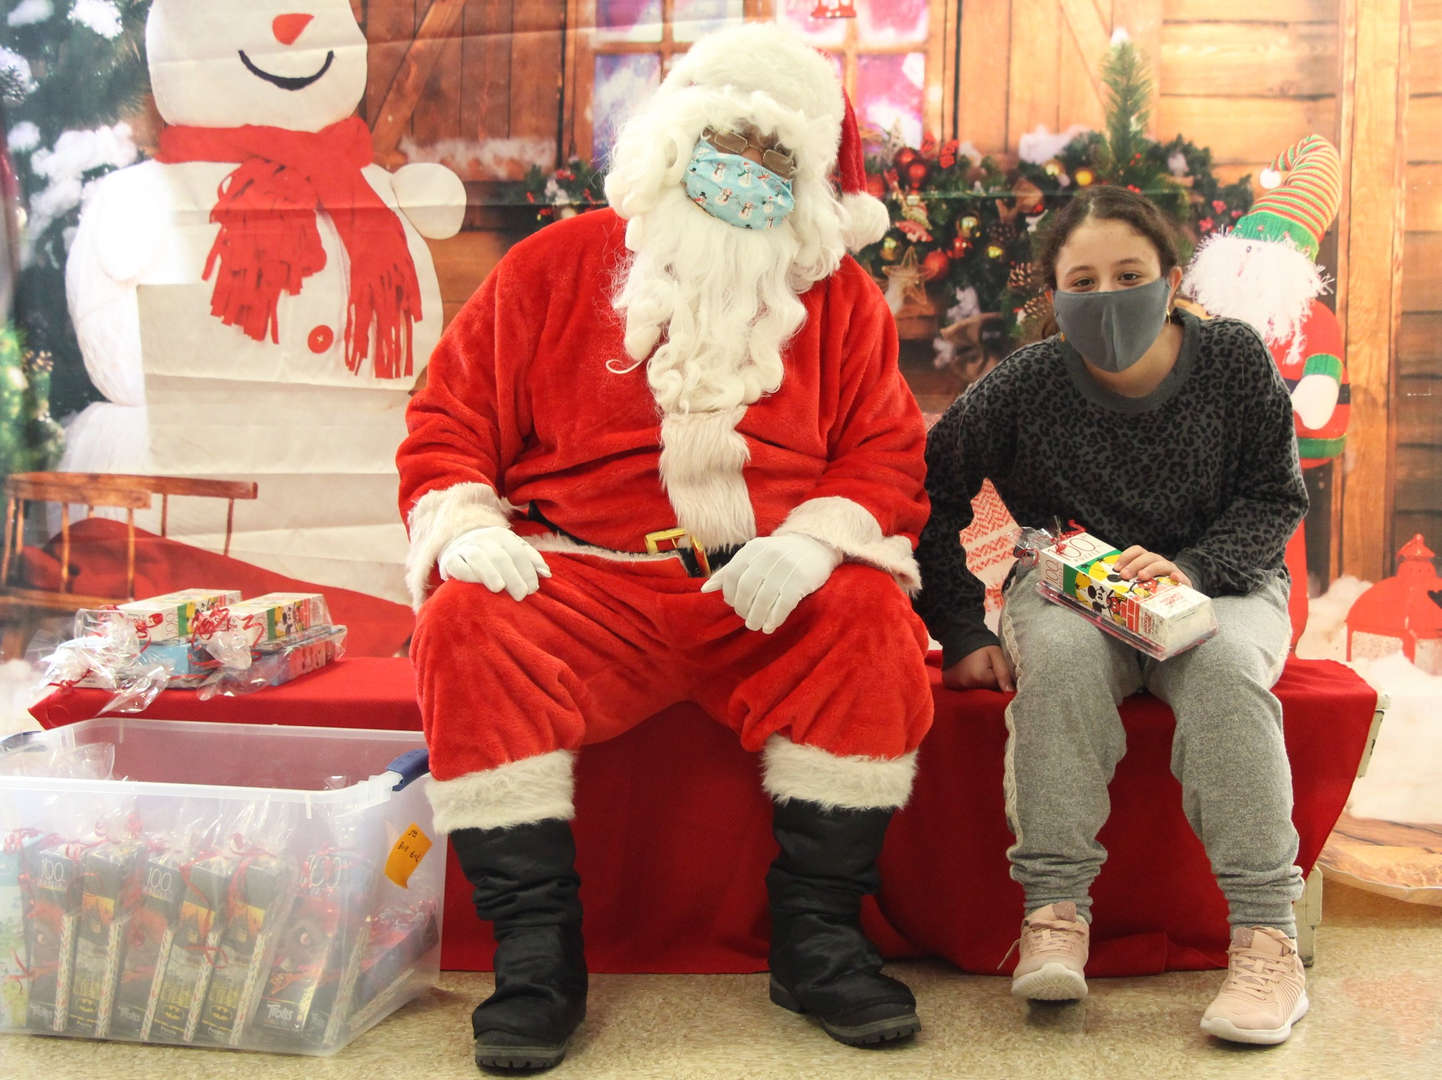 Santa makes a young girl smile with a gift.